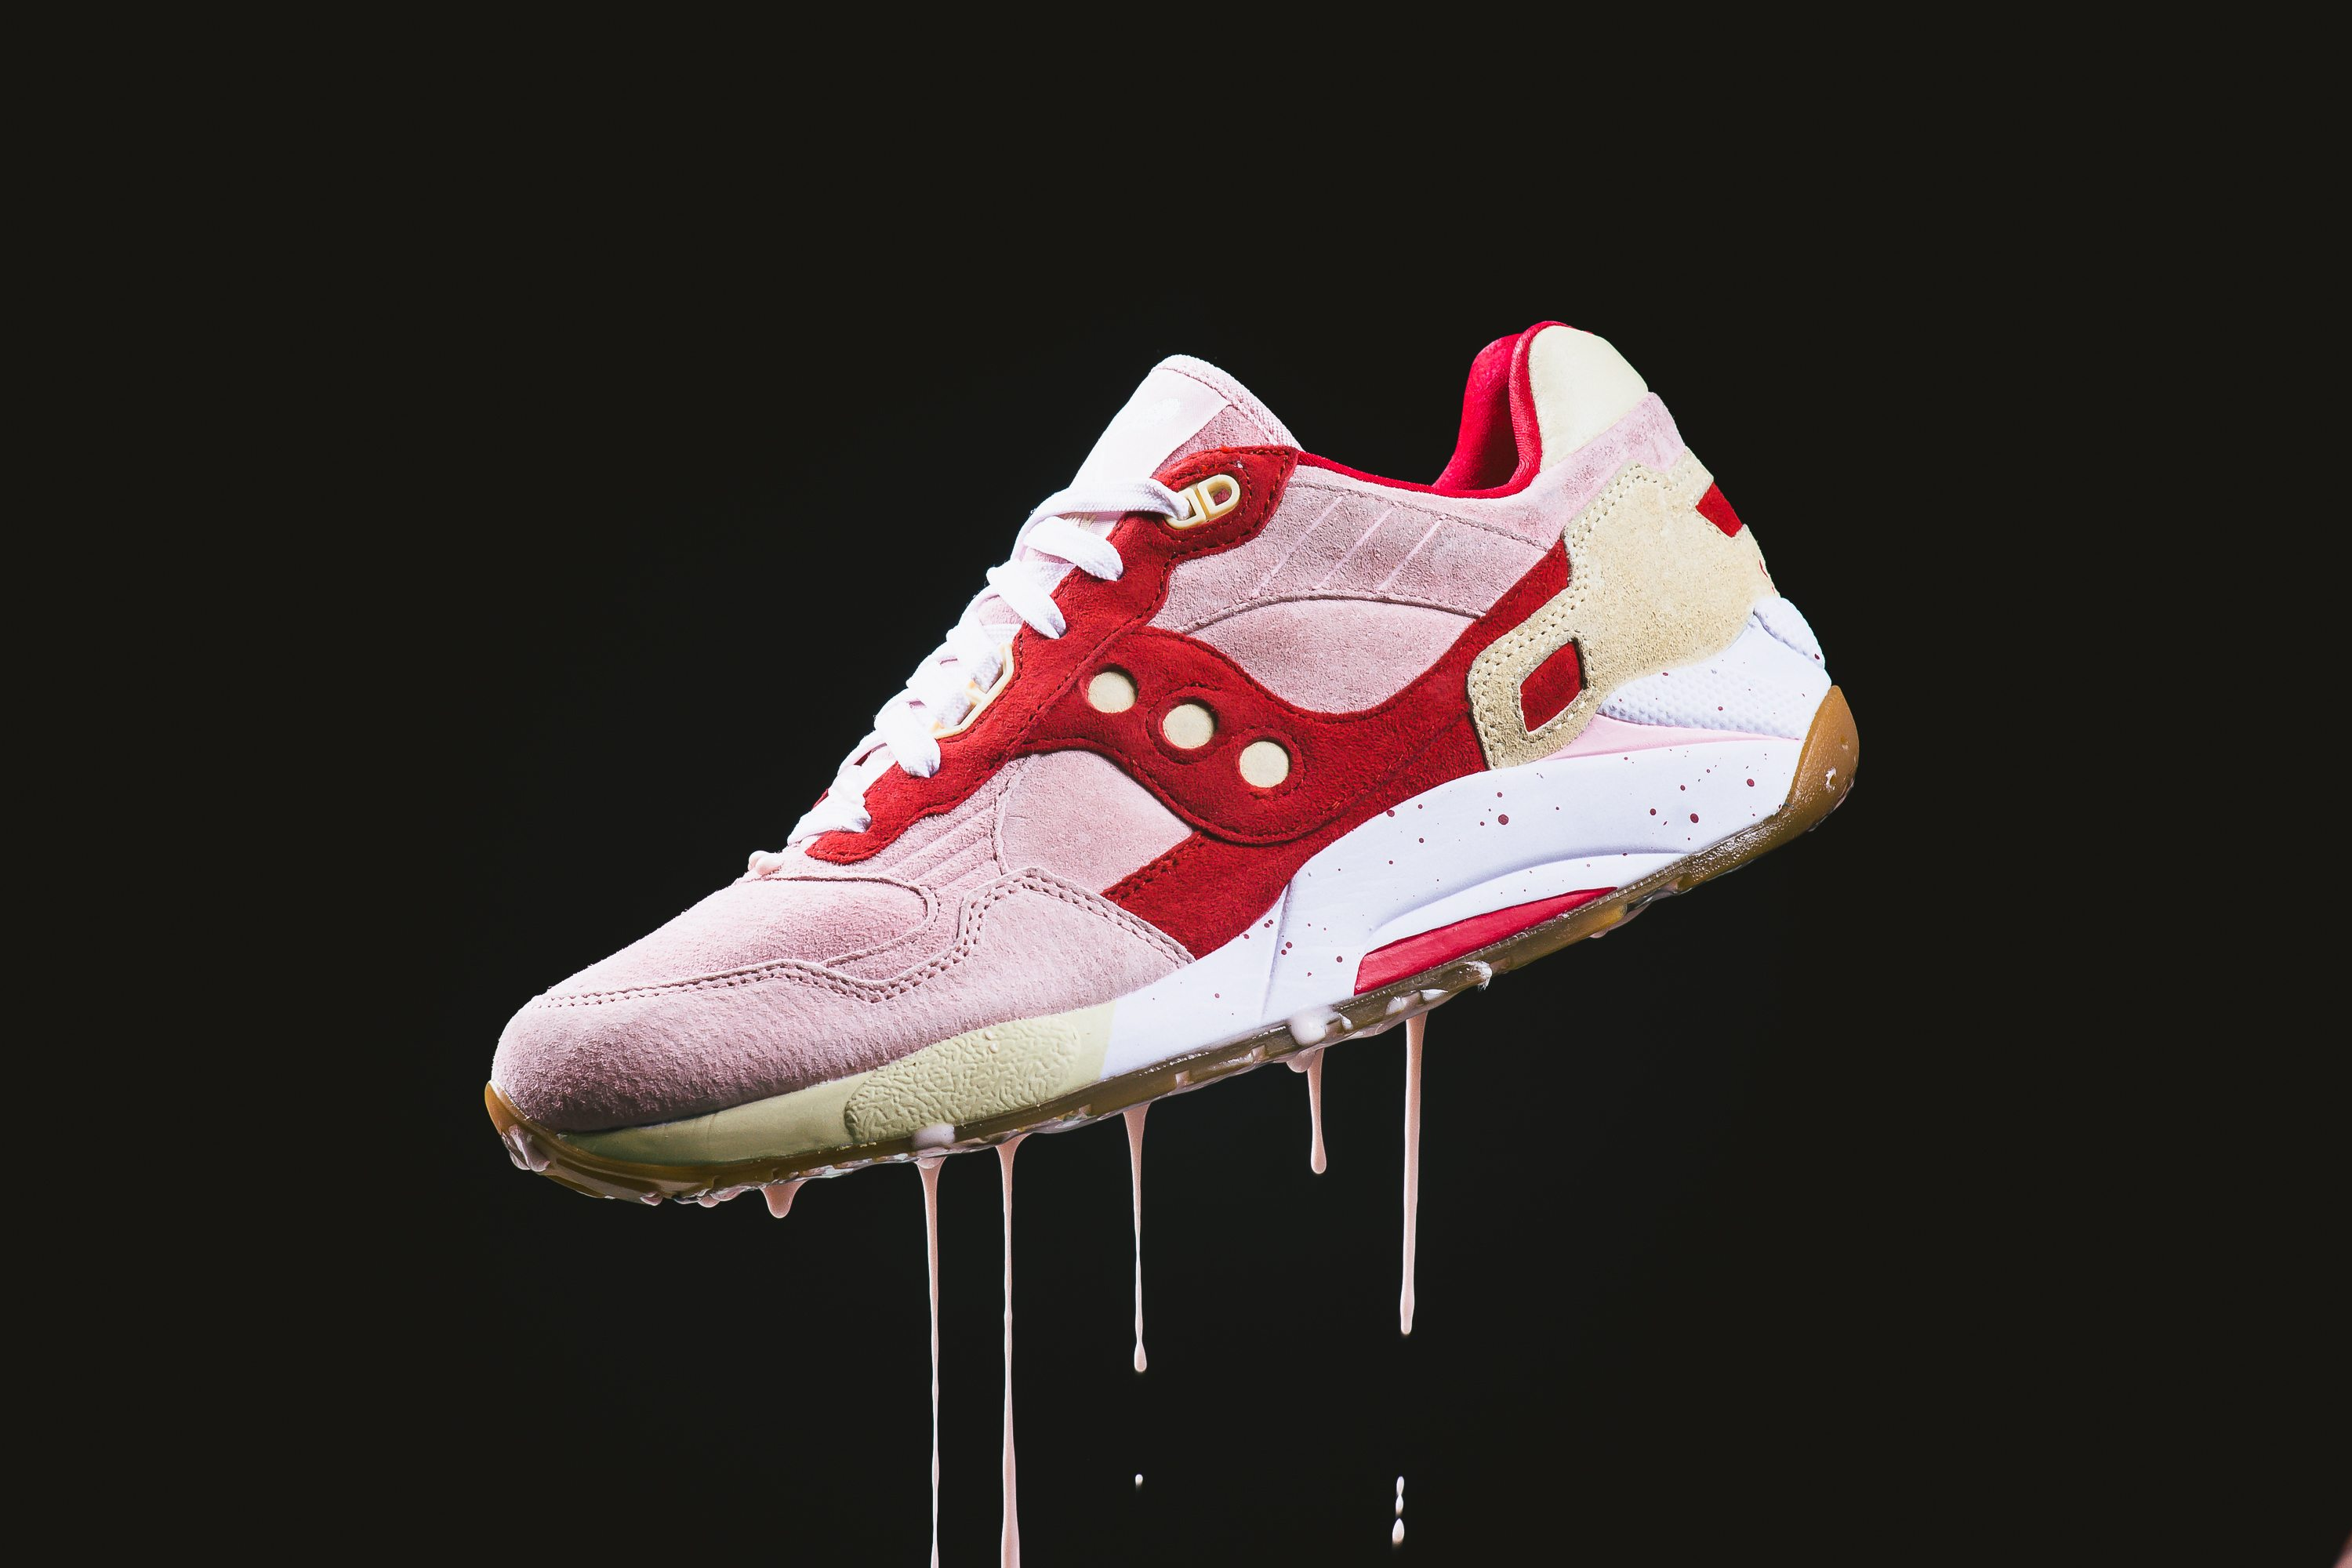 Saucony Originals Scoops Pack G9 Shadow 5 Strawberry Vanilla 1